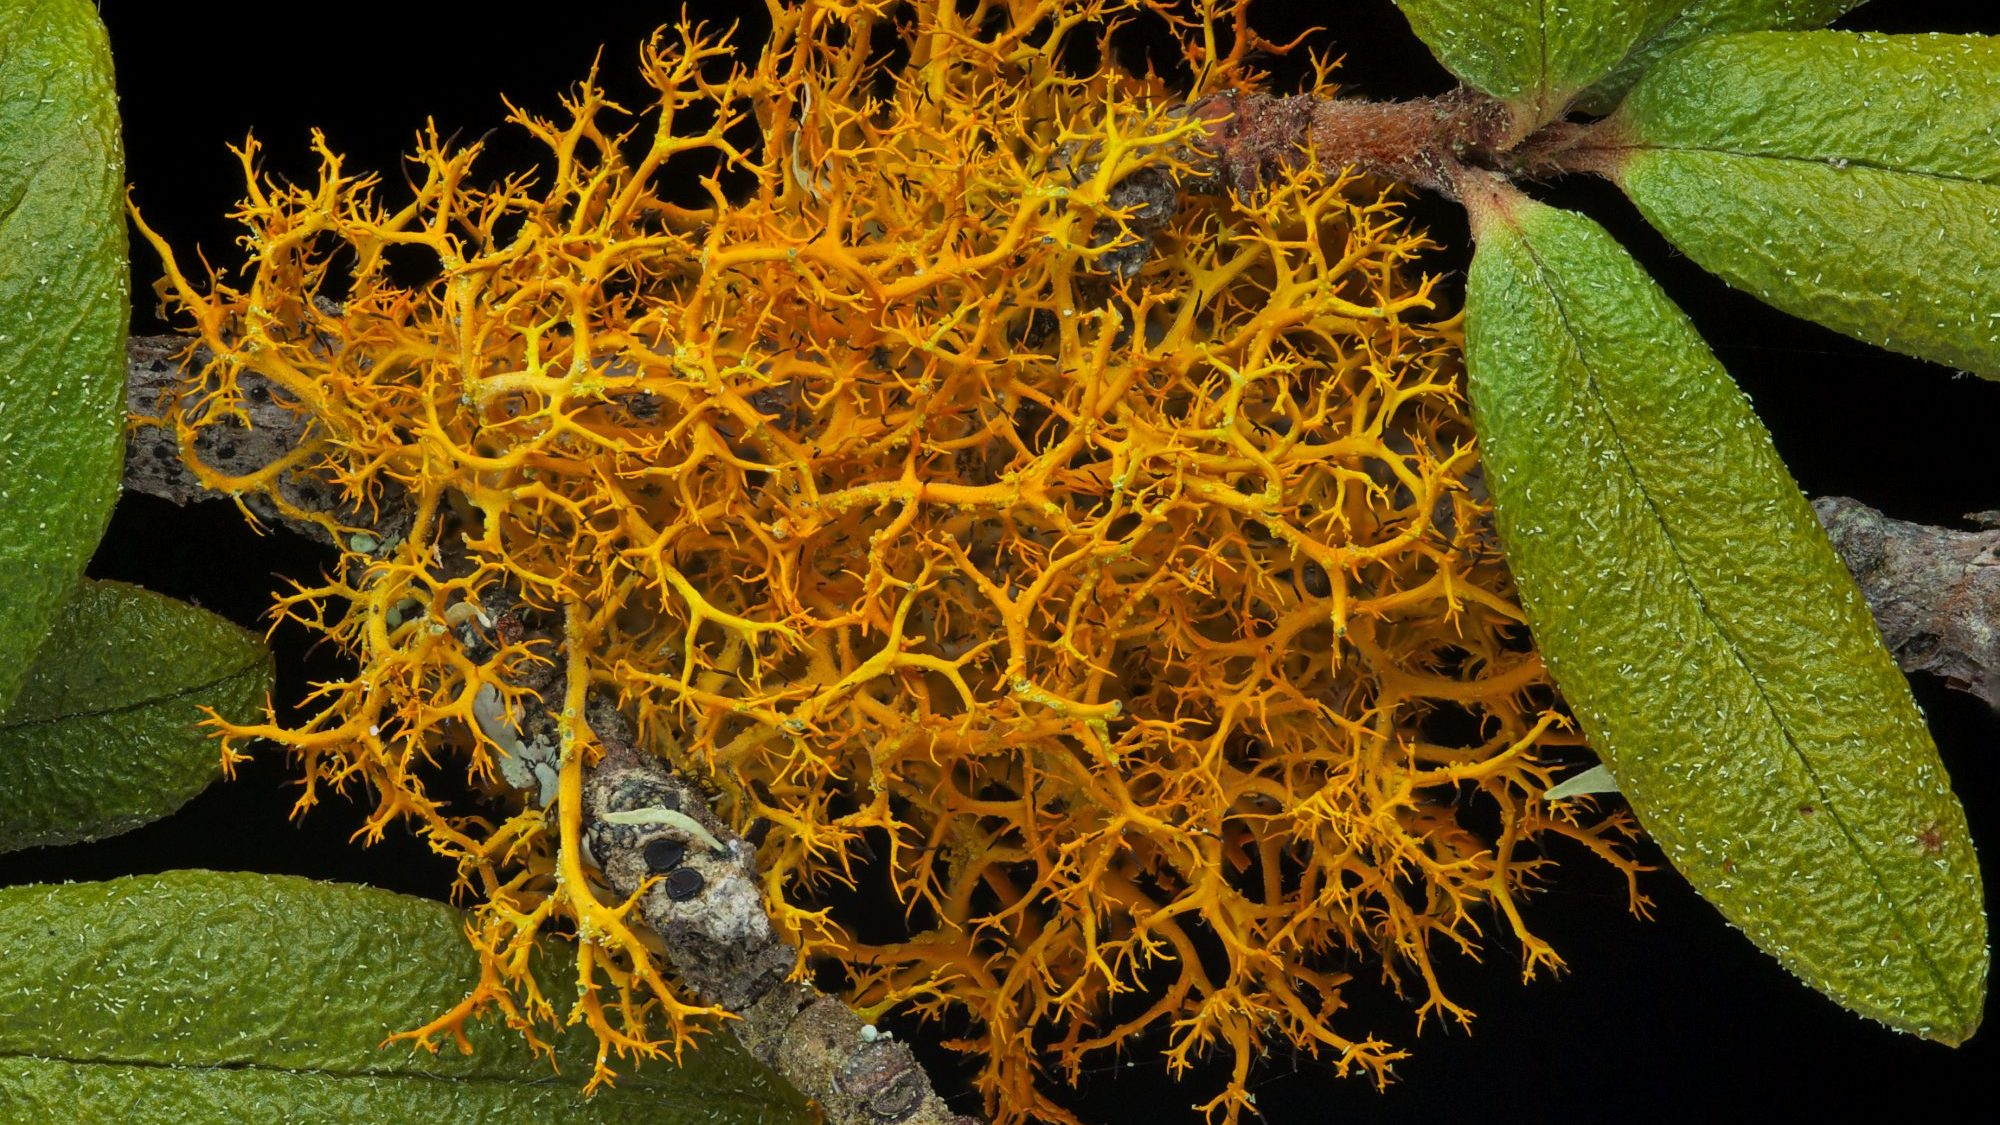 Image: orange spindly lichen growing on a branch with leaves